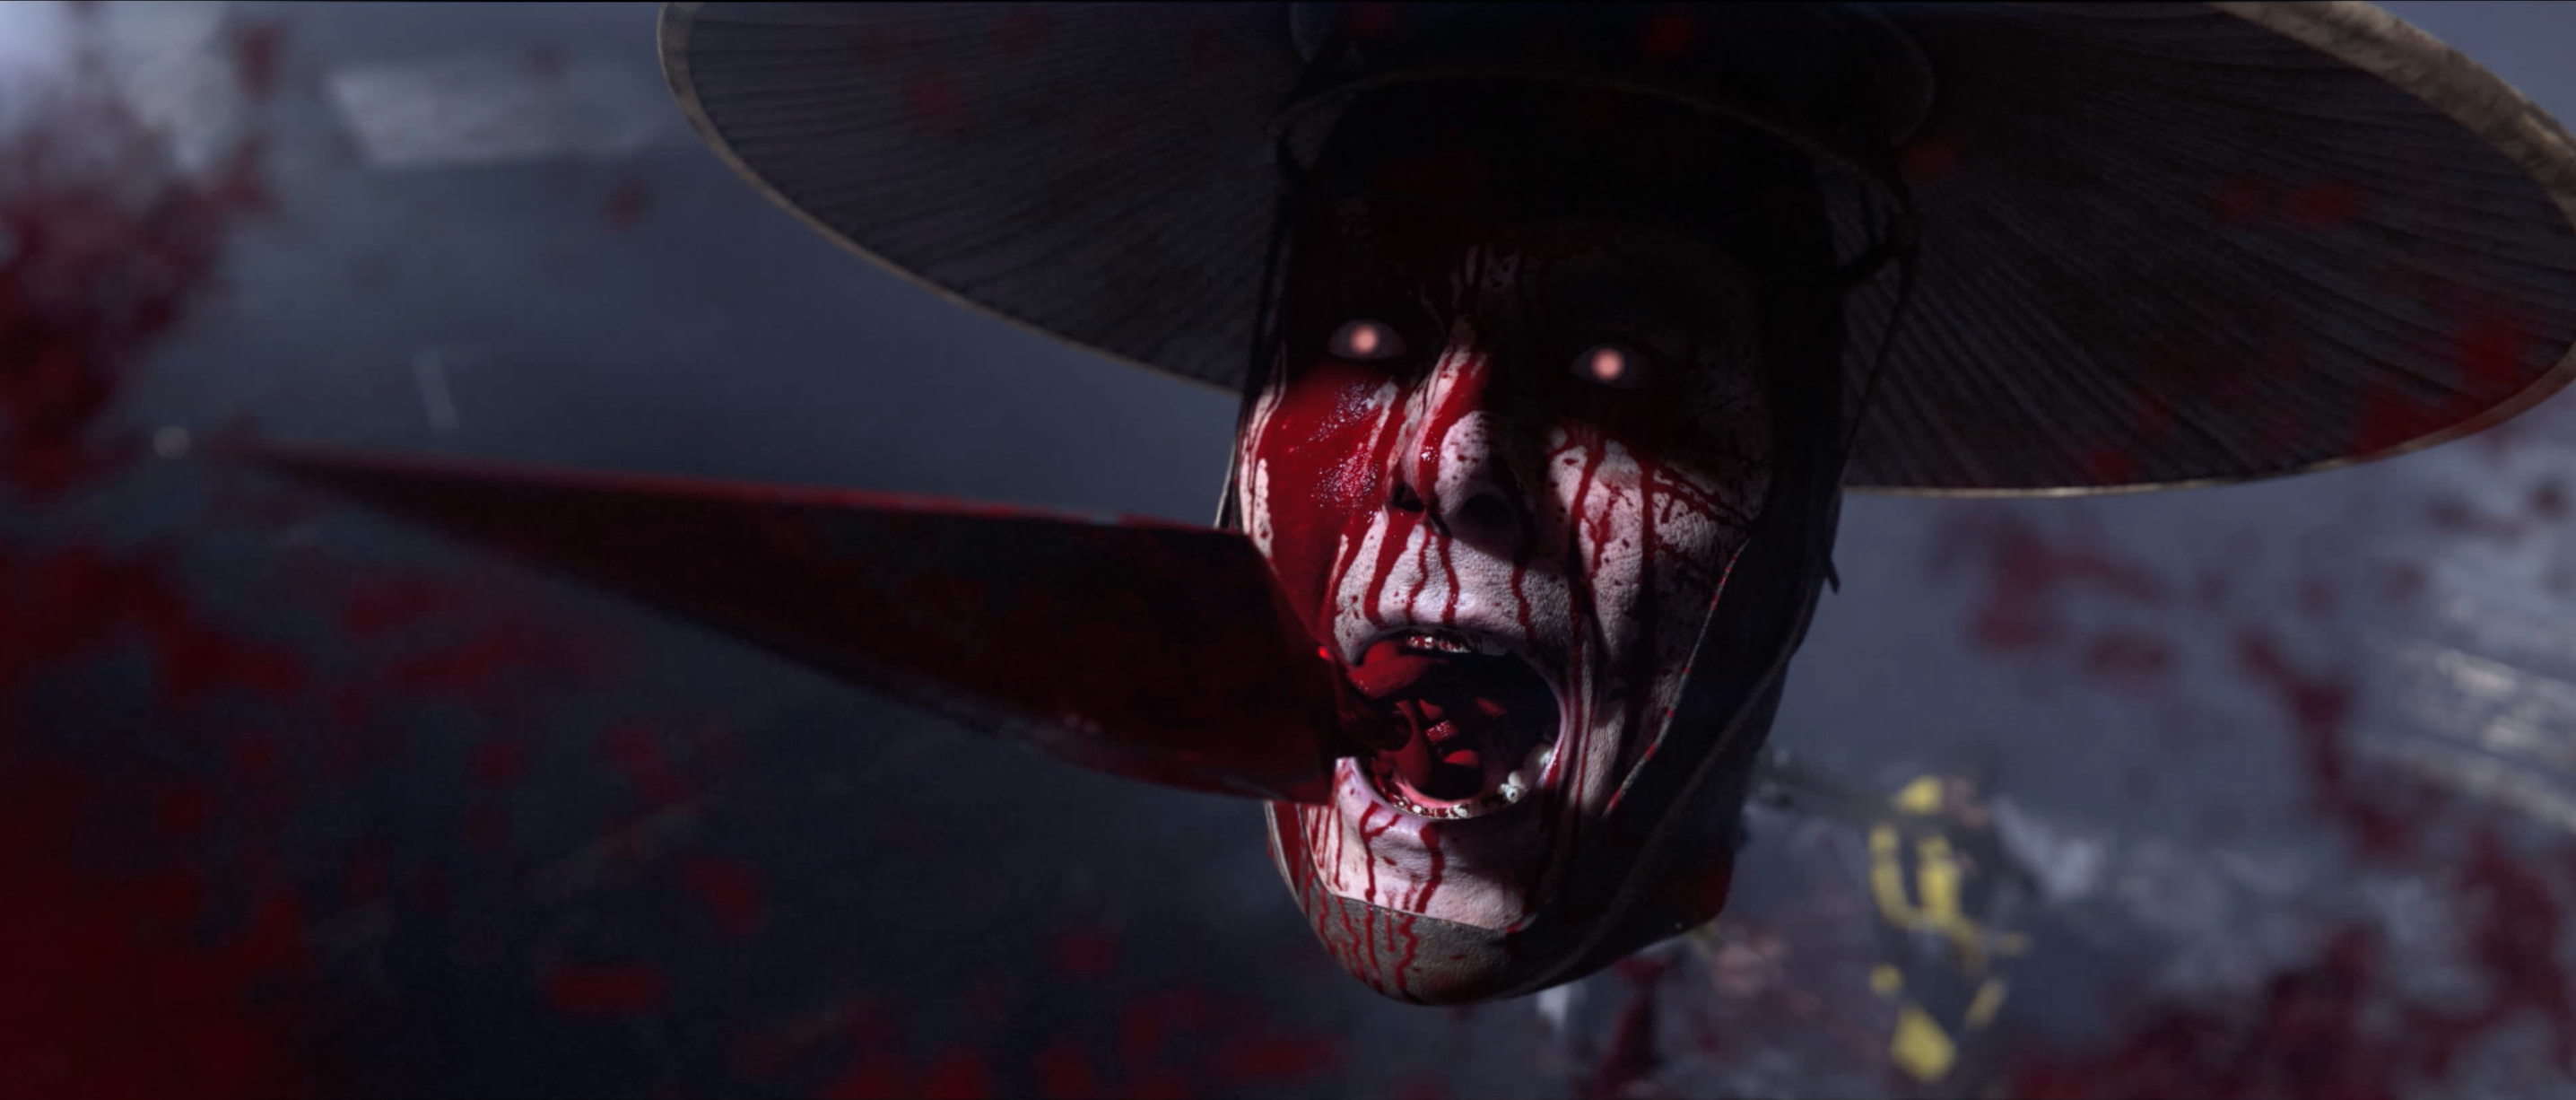 A close up of Raiden's head from Scorpion's fatality in the closing moments of the reveal trailer for MK11.